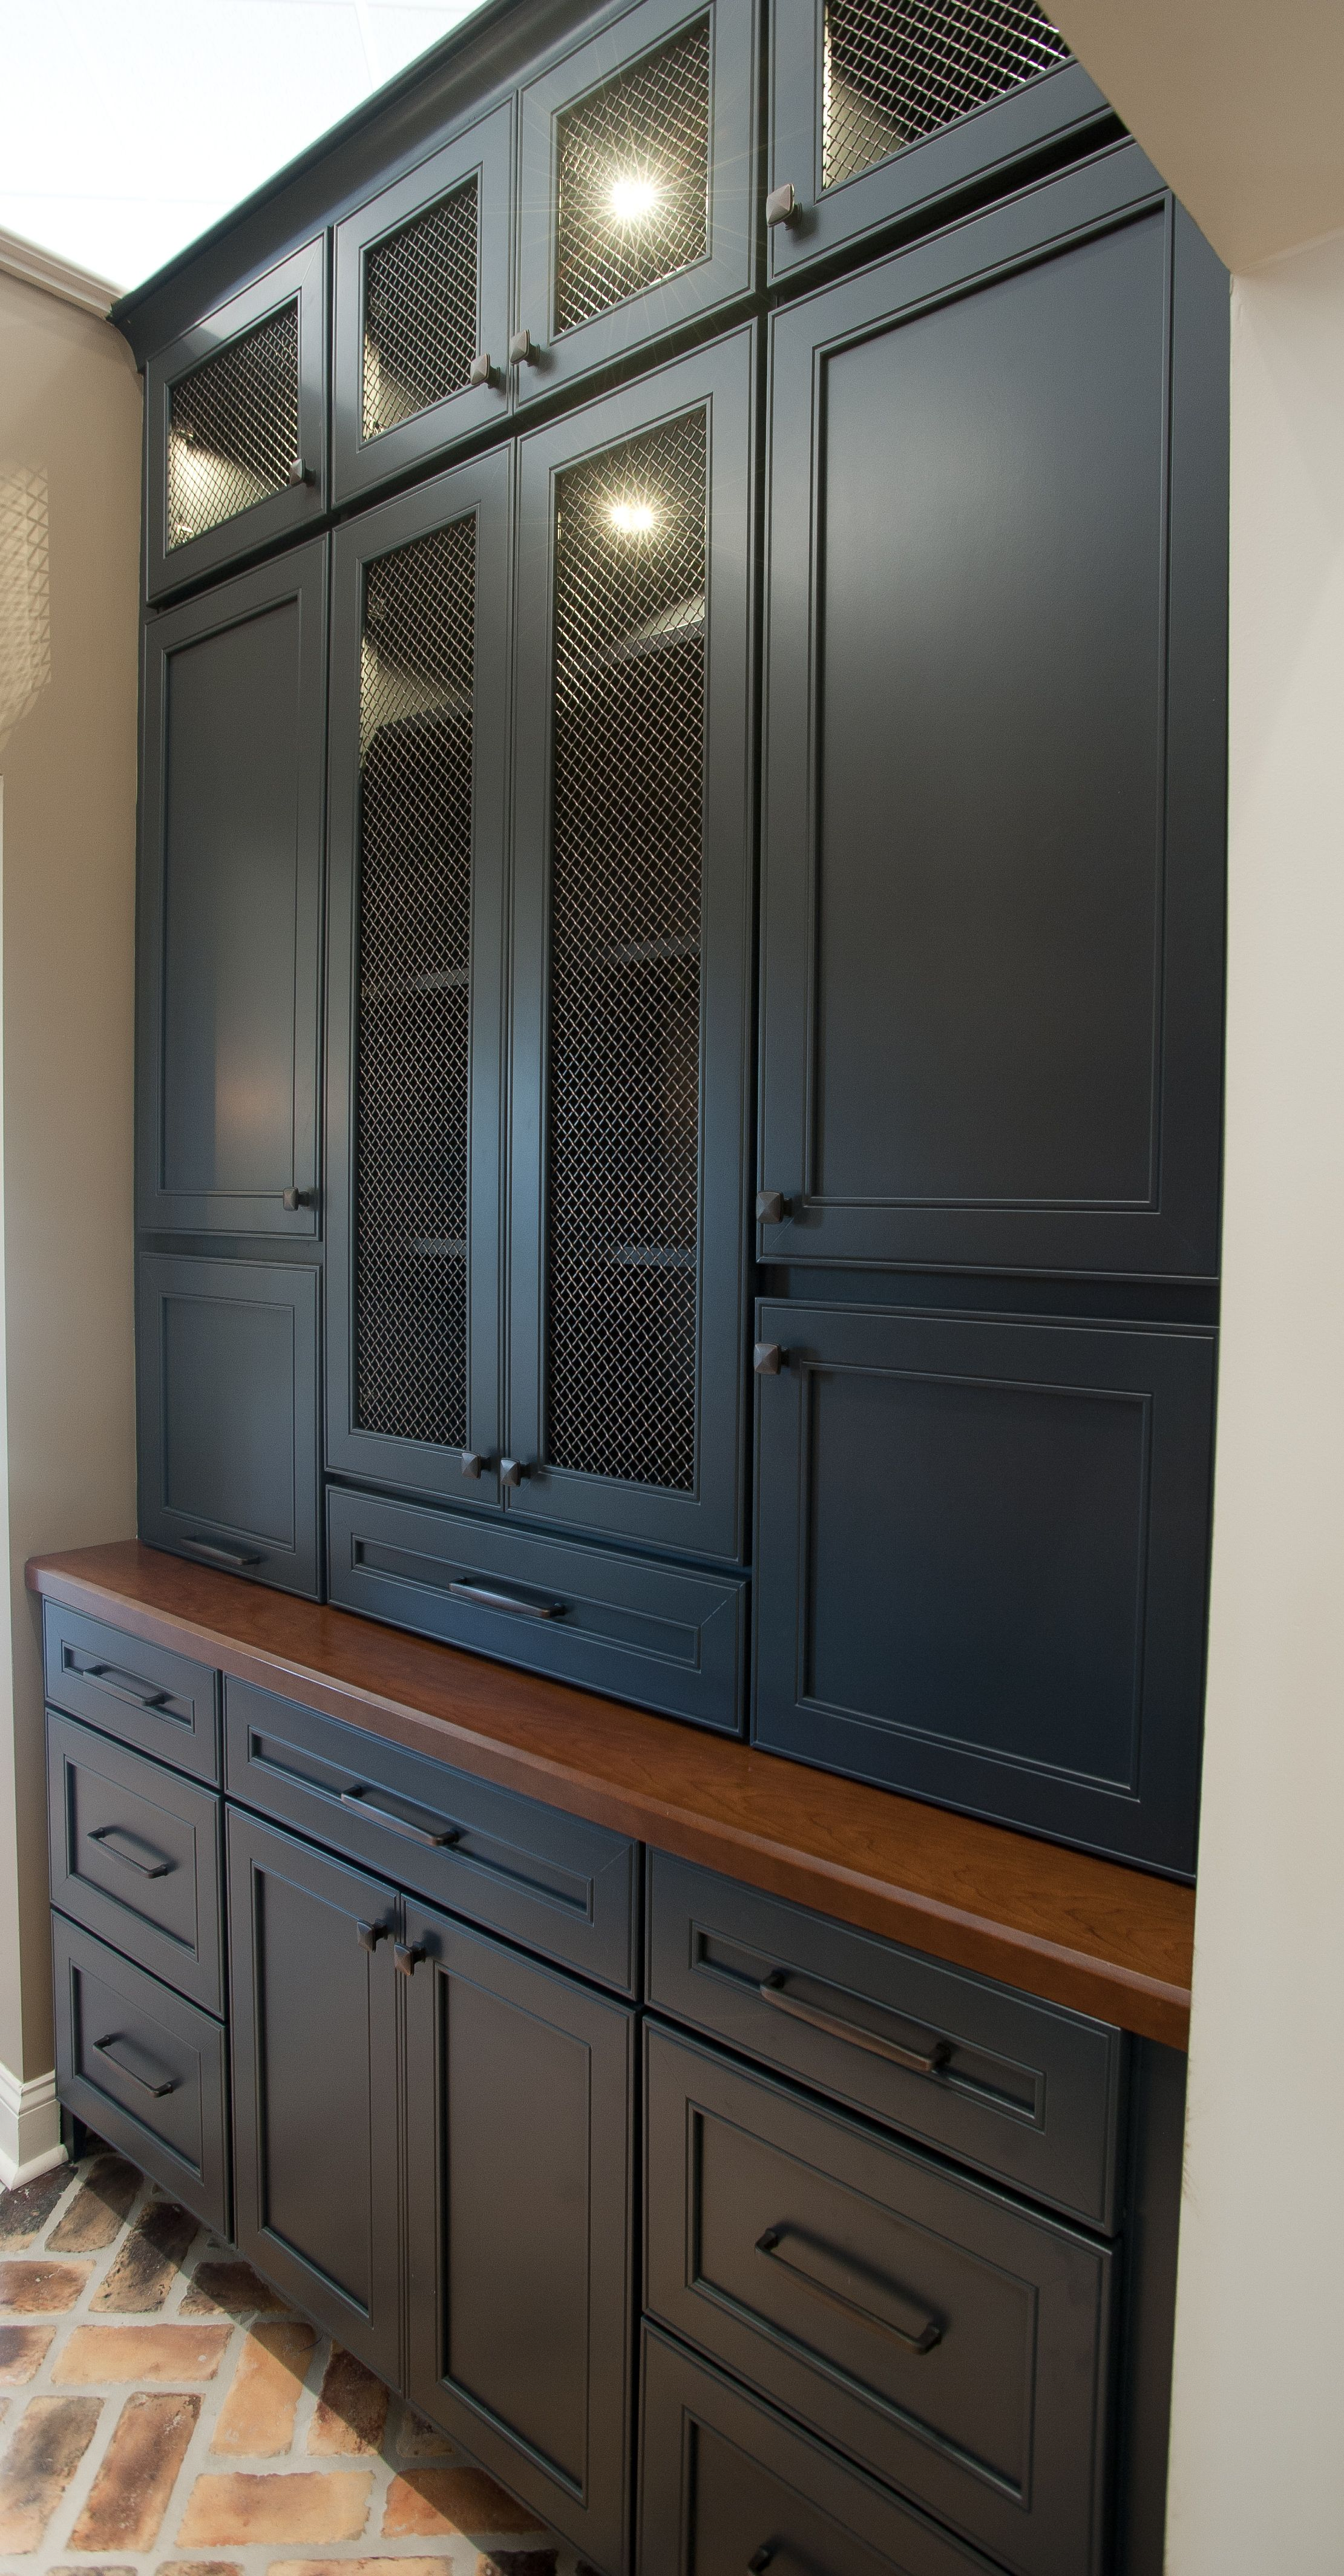 Butler Pantry And Bar Design By Dalton Carpet One Wellborn Cabinets Cabinet Finish Maple Bleu Door Style So Wellborn Cabinets Pantry Cabinet Flooring Store